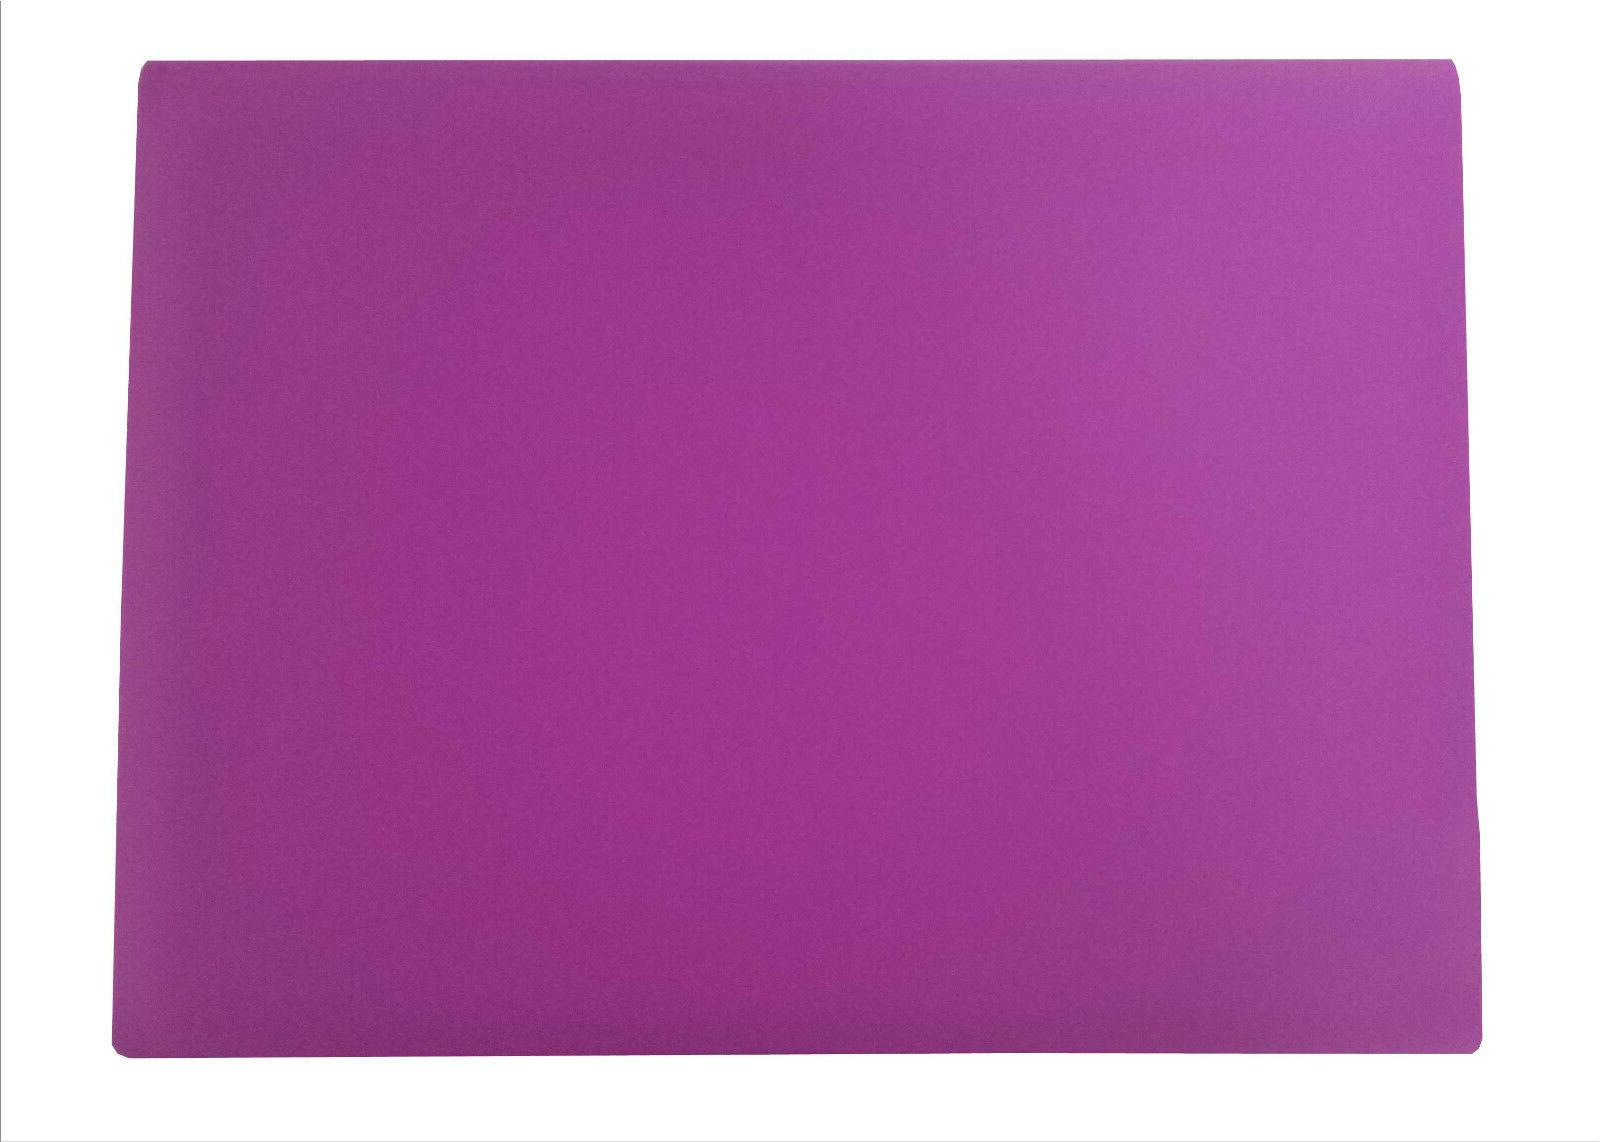 Logitech Blok UltraThin Cover iPad Violet New